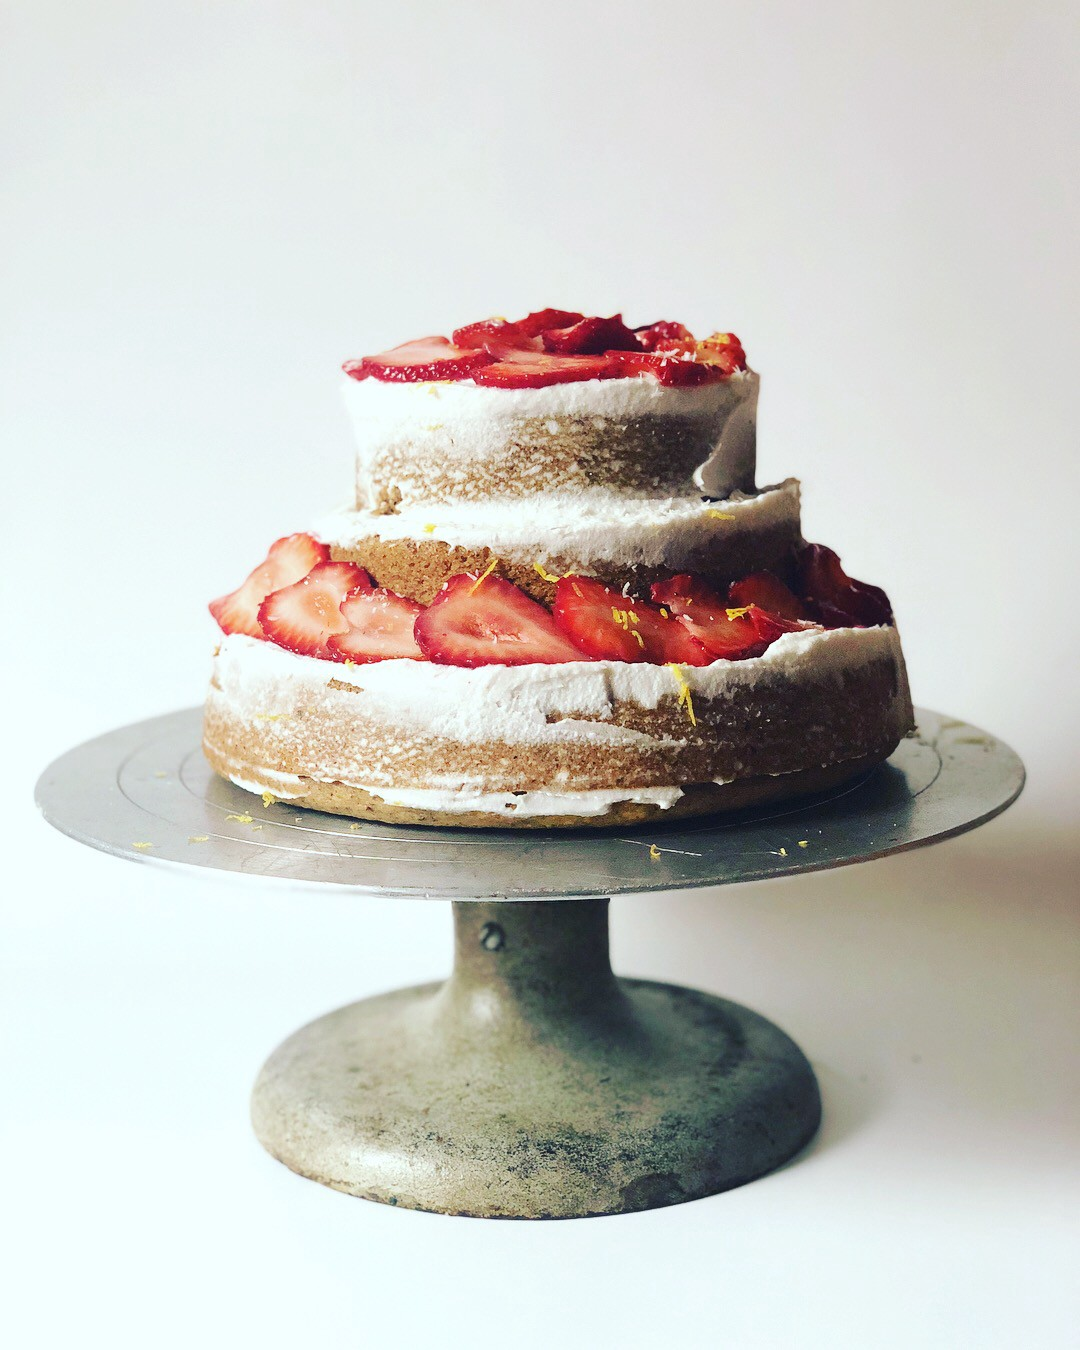 A layered cake on a silver cake stand — the cake is golden brown with lightly applied white icing and strawberries.